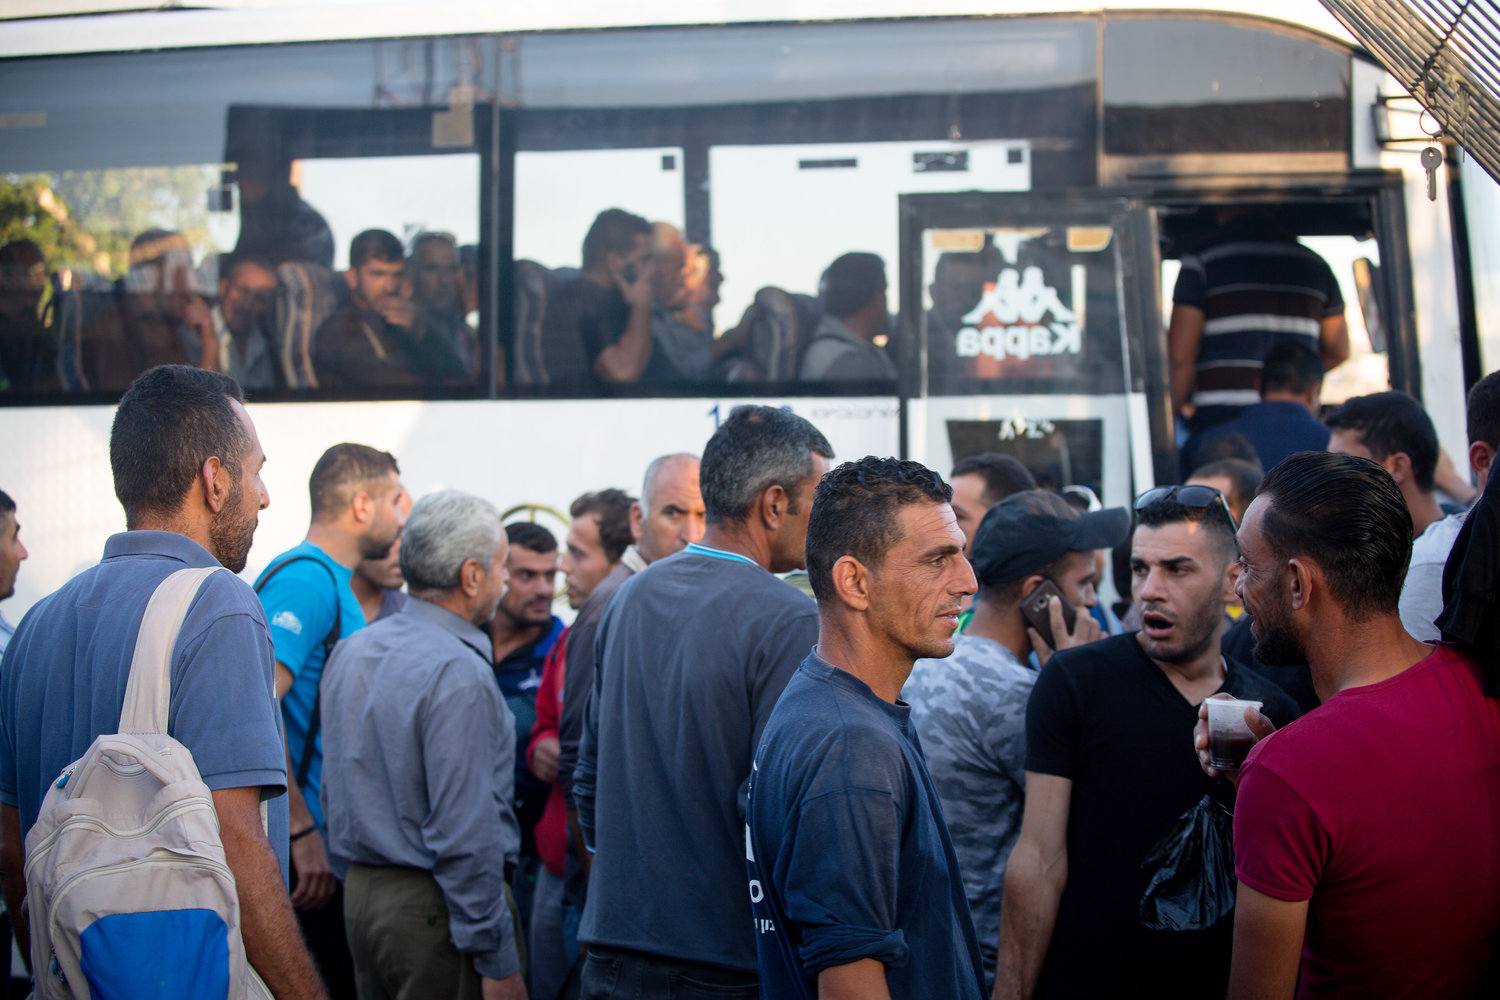 These commuters finally get to board their buses to their final destinations in Israel, after waiting at Checkpoint 300.